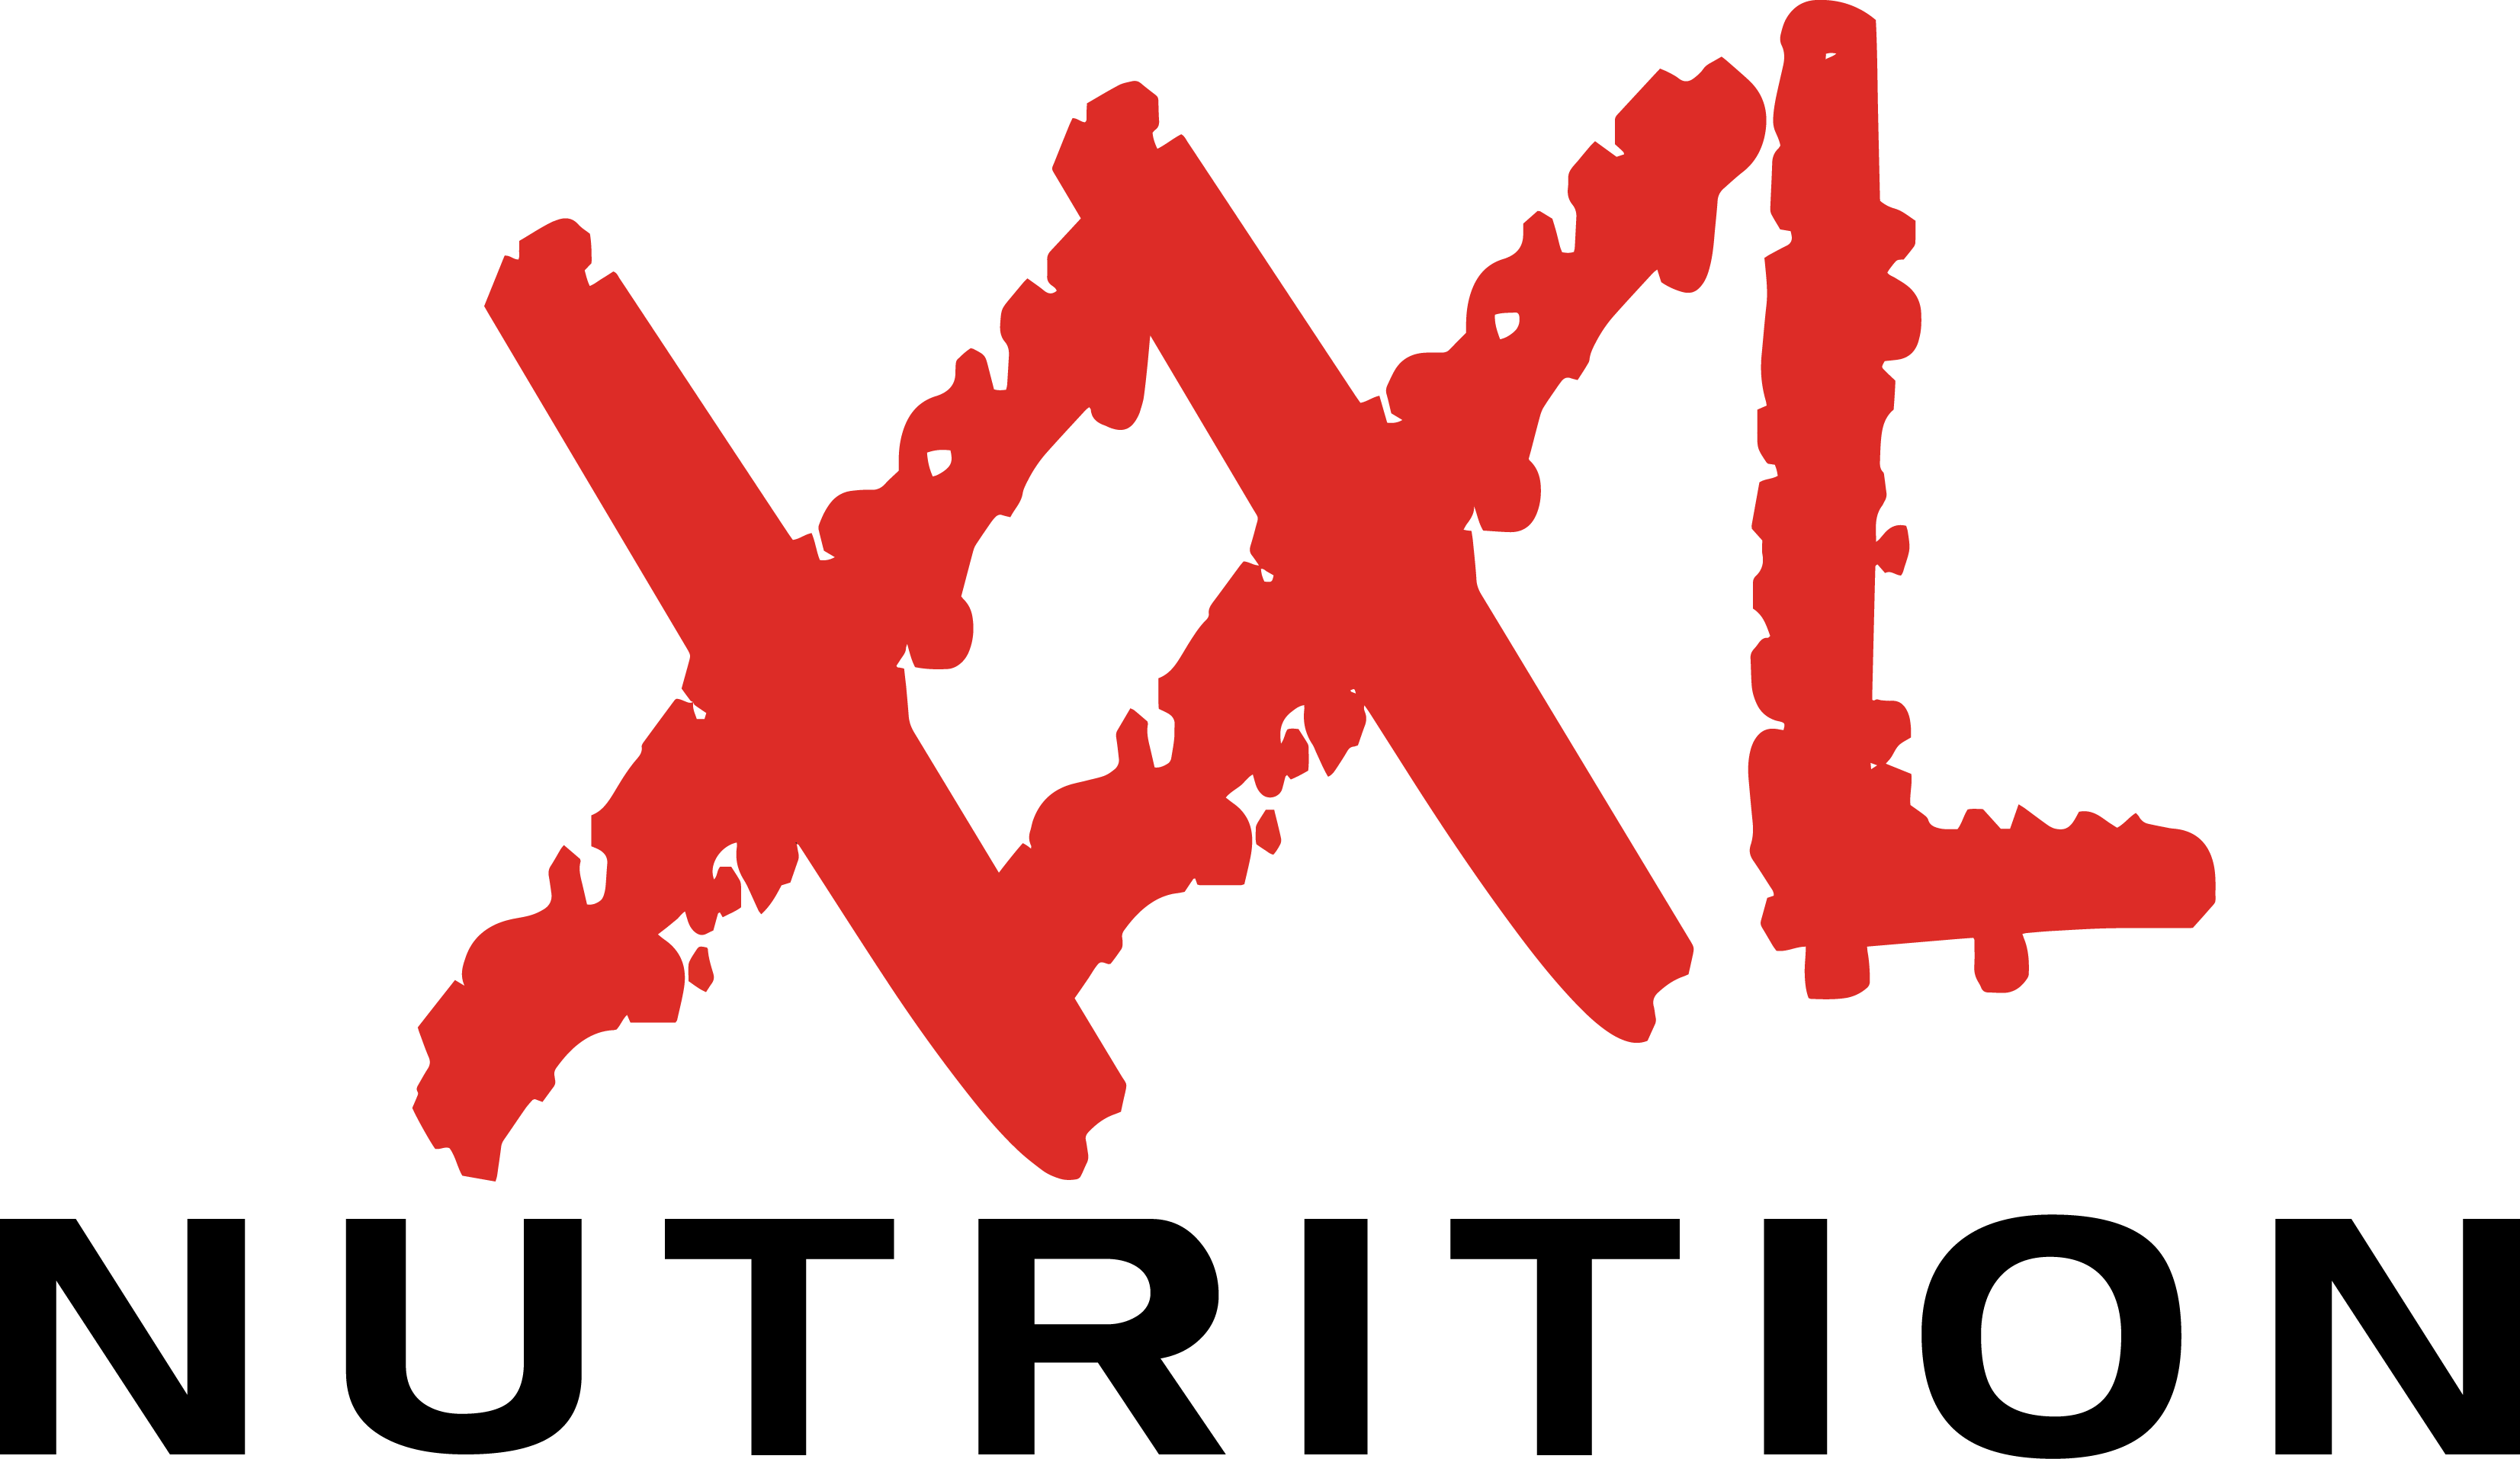 xxl_nutrition_logo_vector_without_strokes_nutrition_black